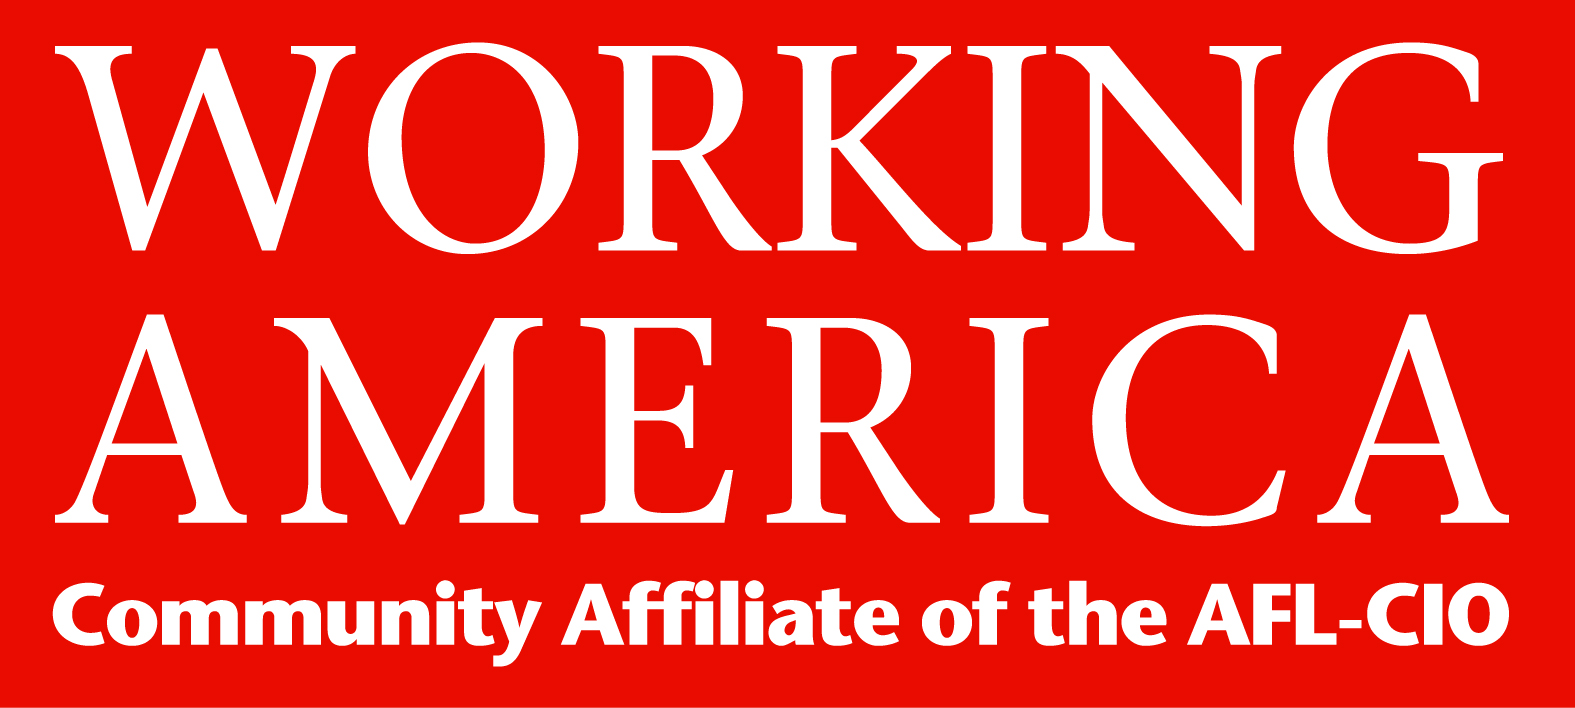 Working_America_LOGO_Red_AFLCIO_FINAL.jpg